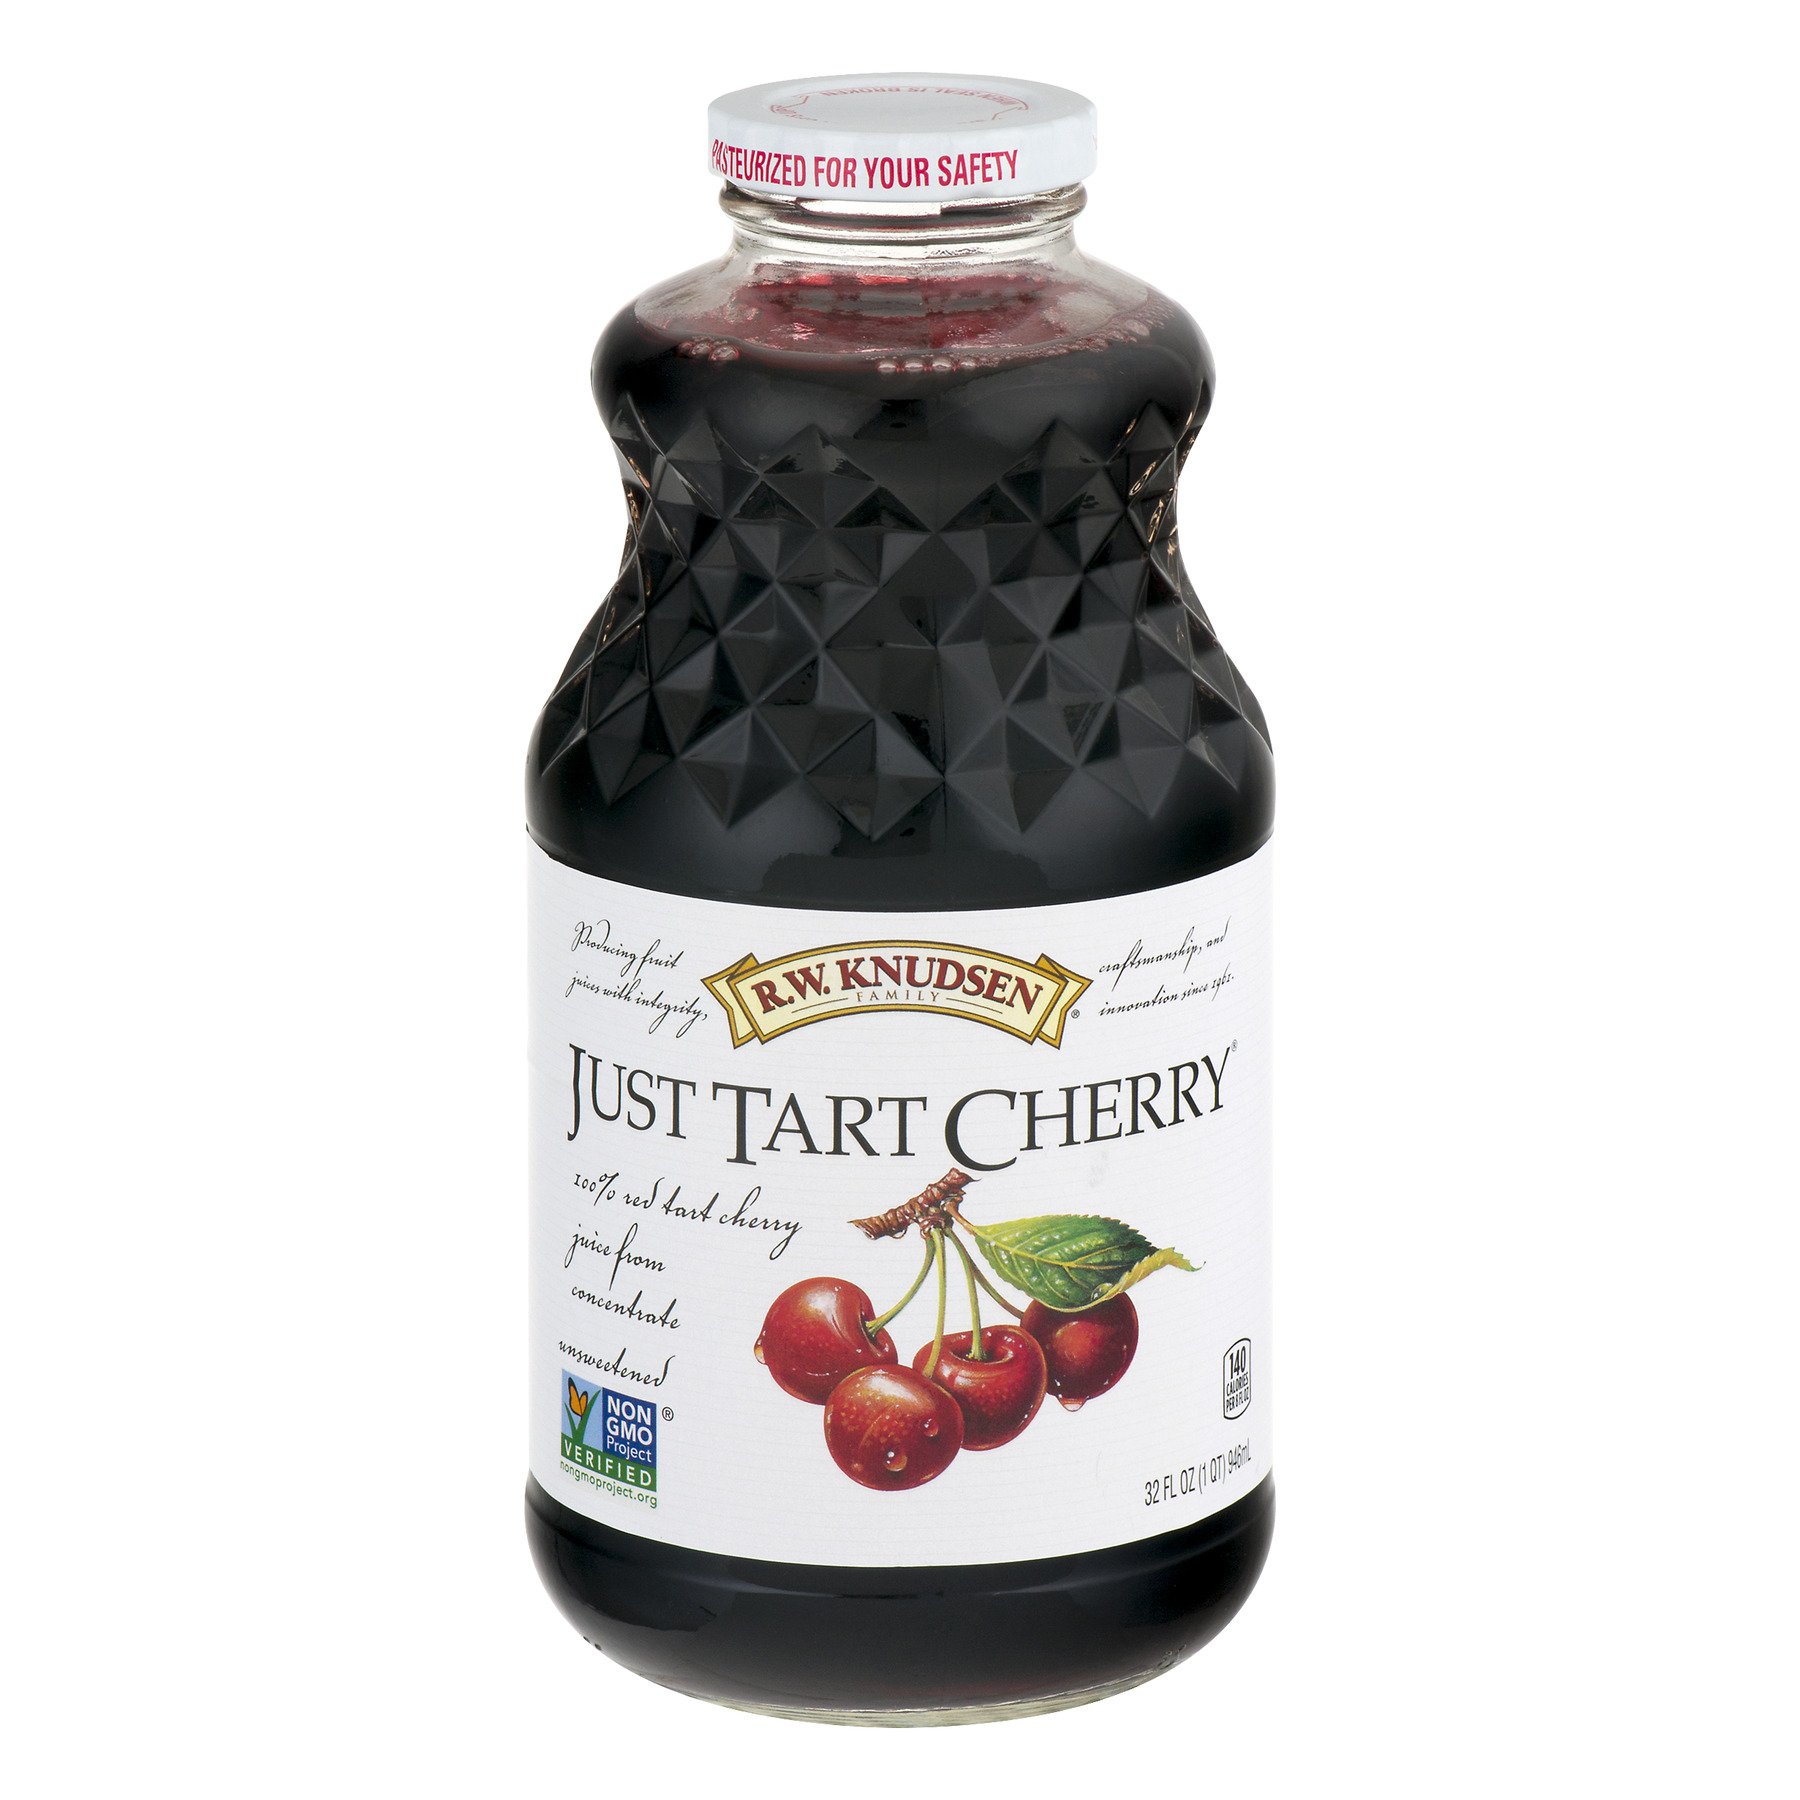 R.W. Knudsen 100% Juice, Tart Cherry, 32 Fl Oz, 1 Count